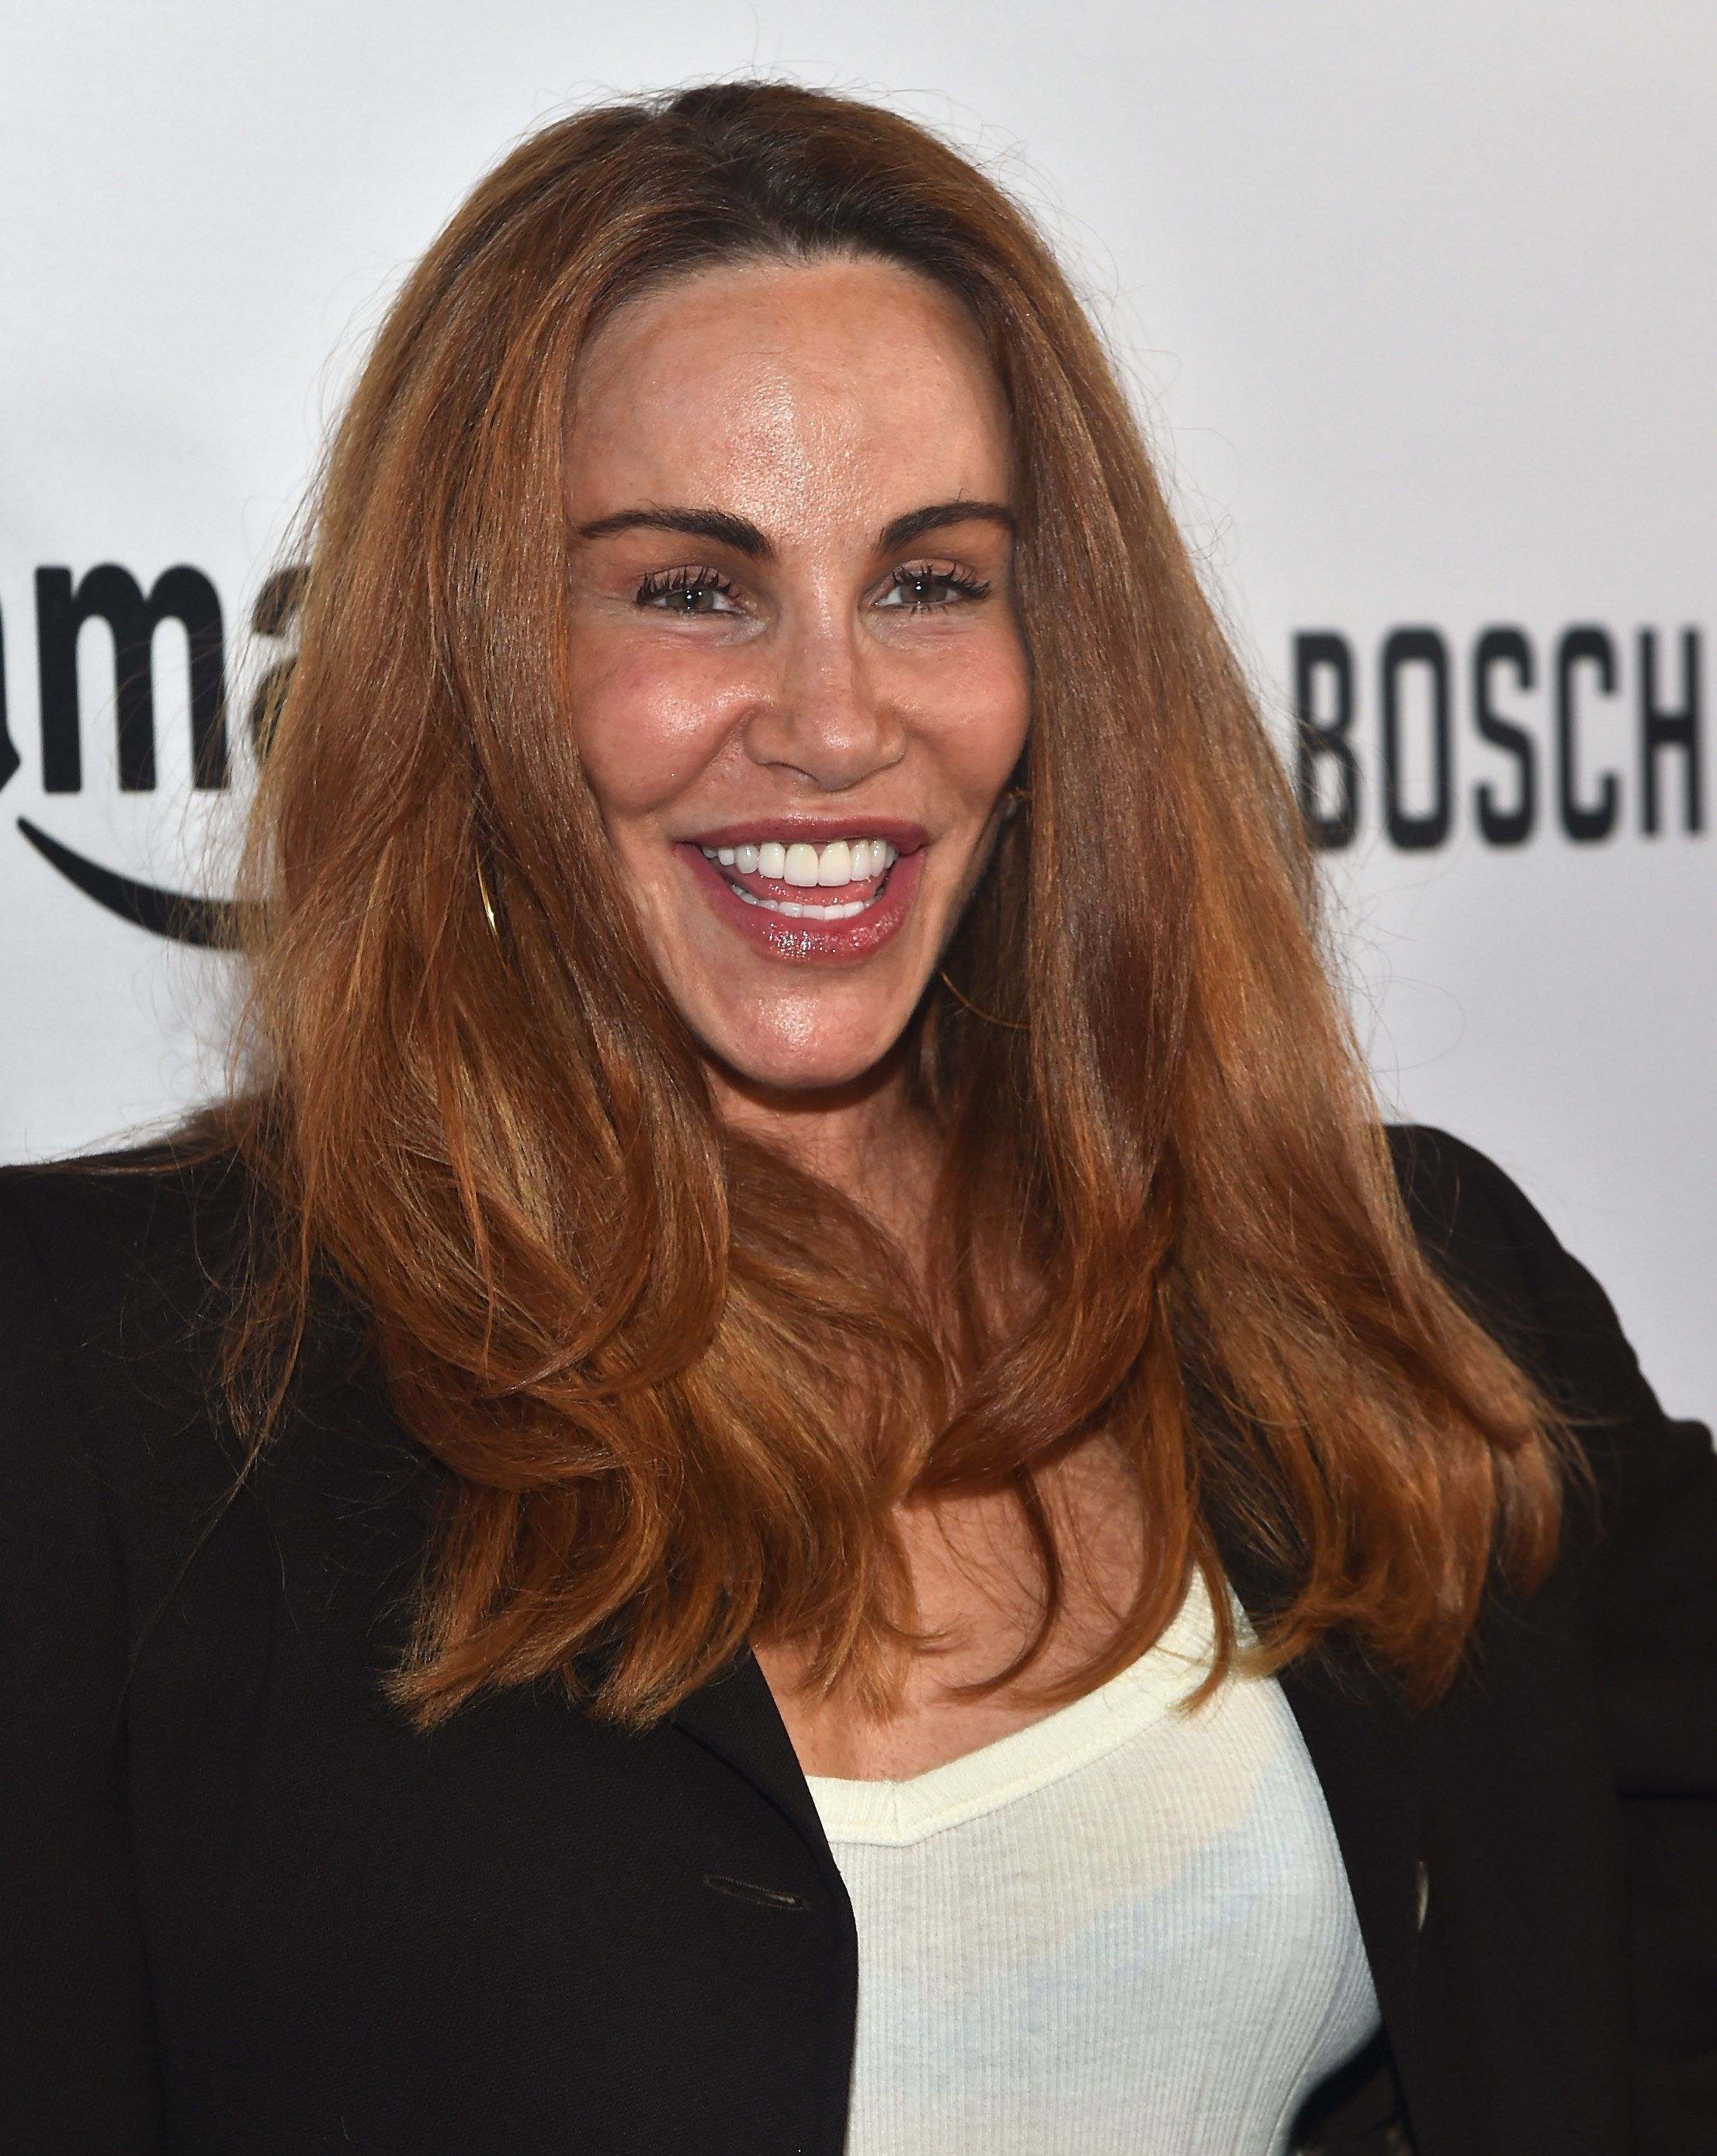 Tawny Kitaen nude (43 photos), Pussy, Paparazzi, Selfie, cleavage 2020